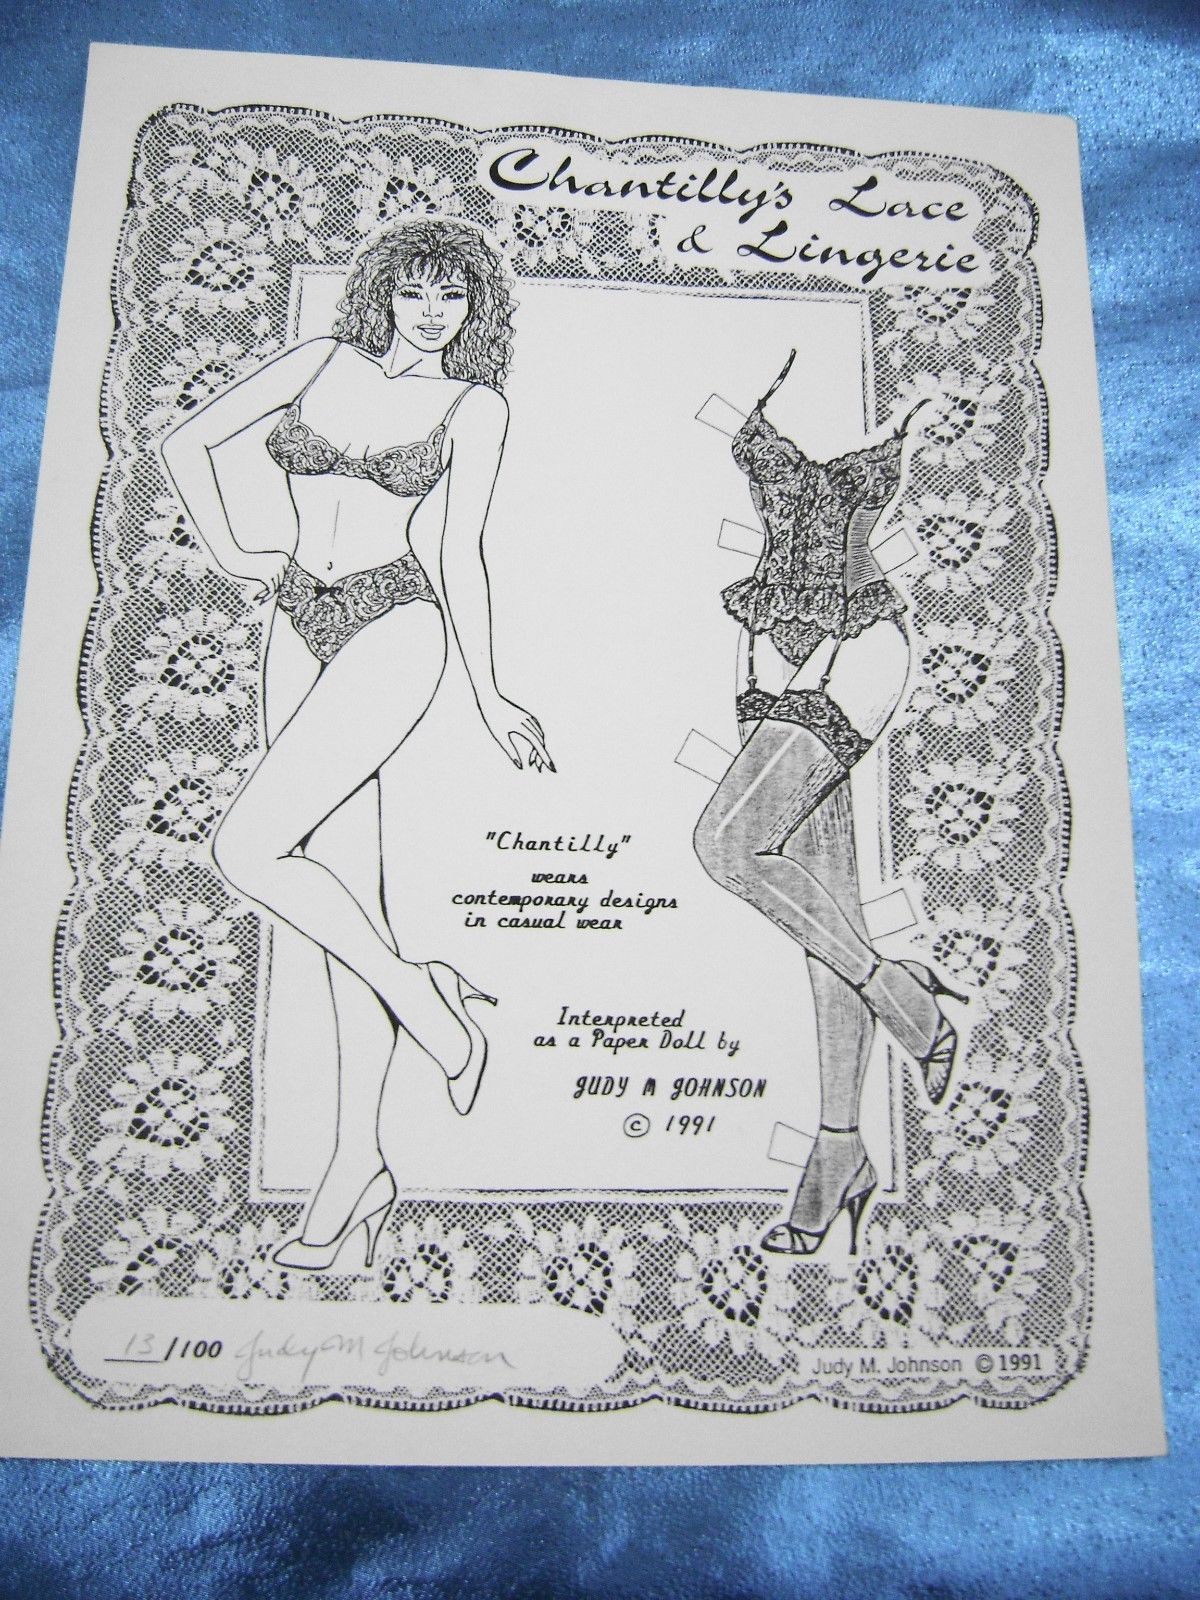 VTG PAPER DOLL CONVENTION 1990s JUDY JOHNSON CHANTILLY'S LACE SIGNED UNCUT RARE | eBay